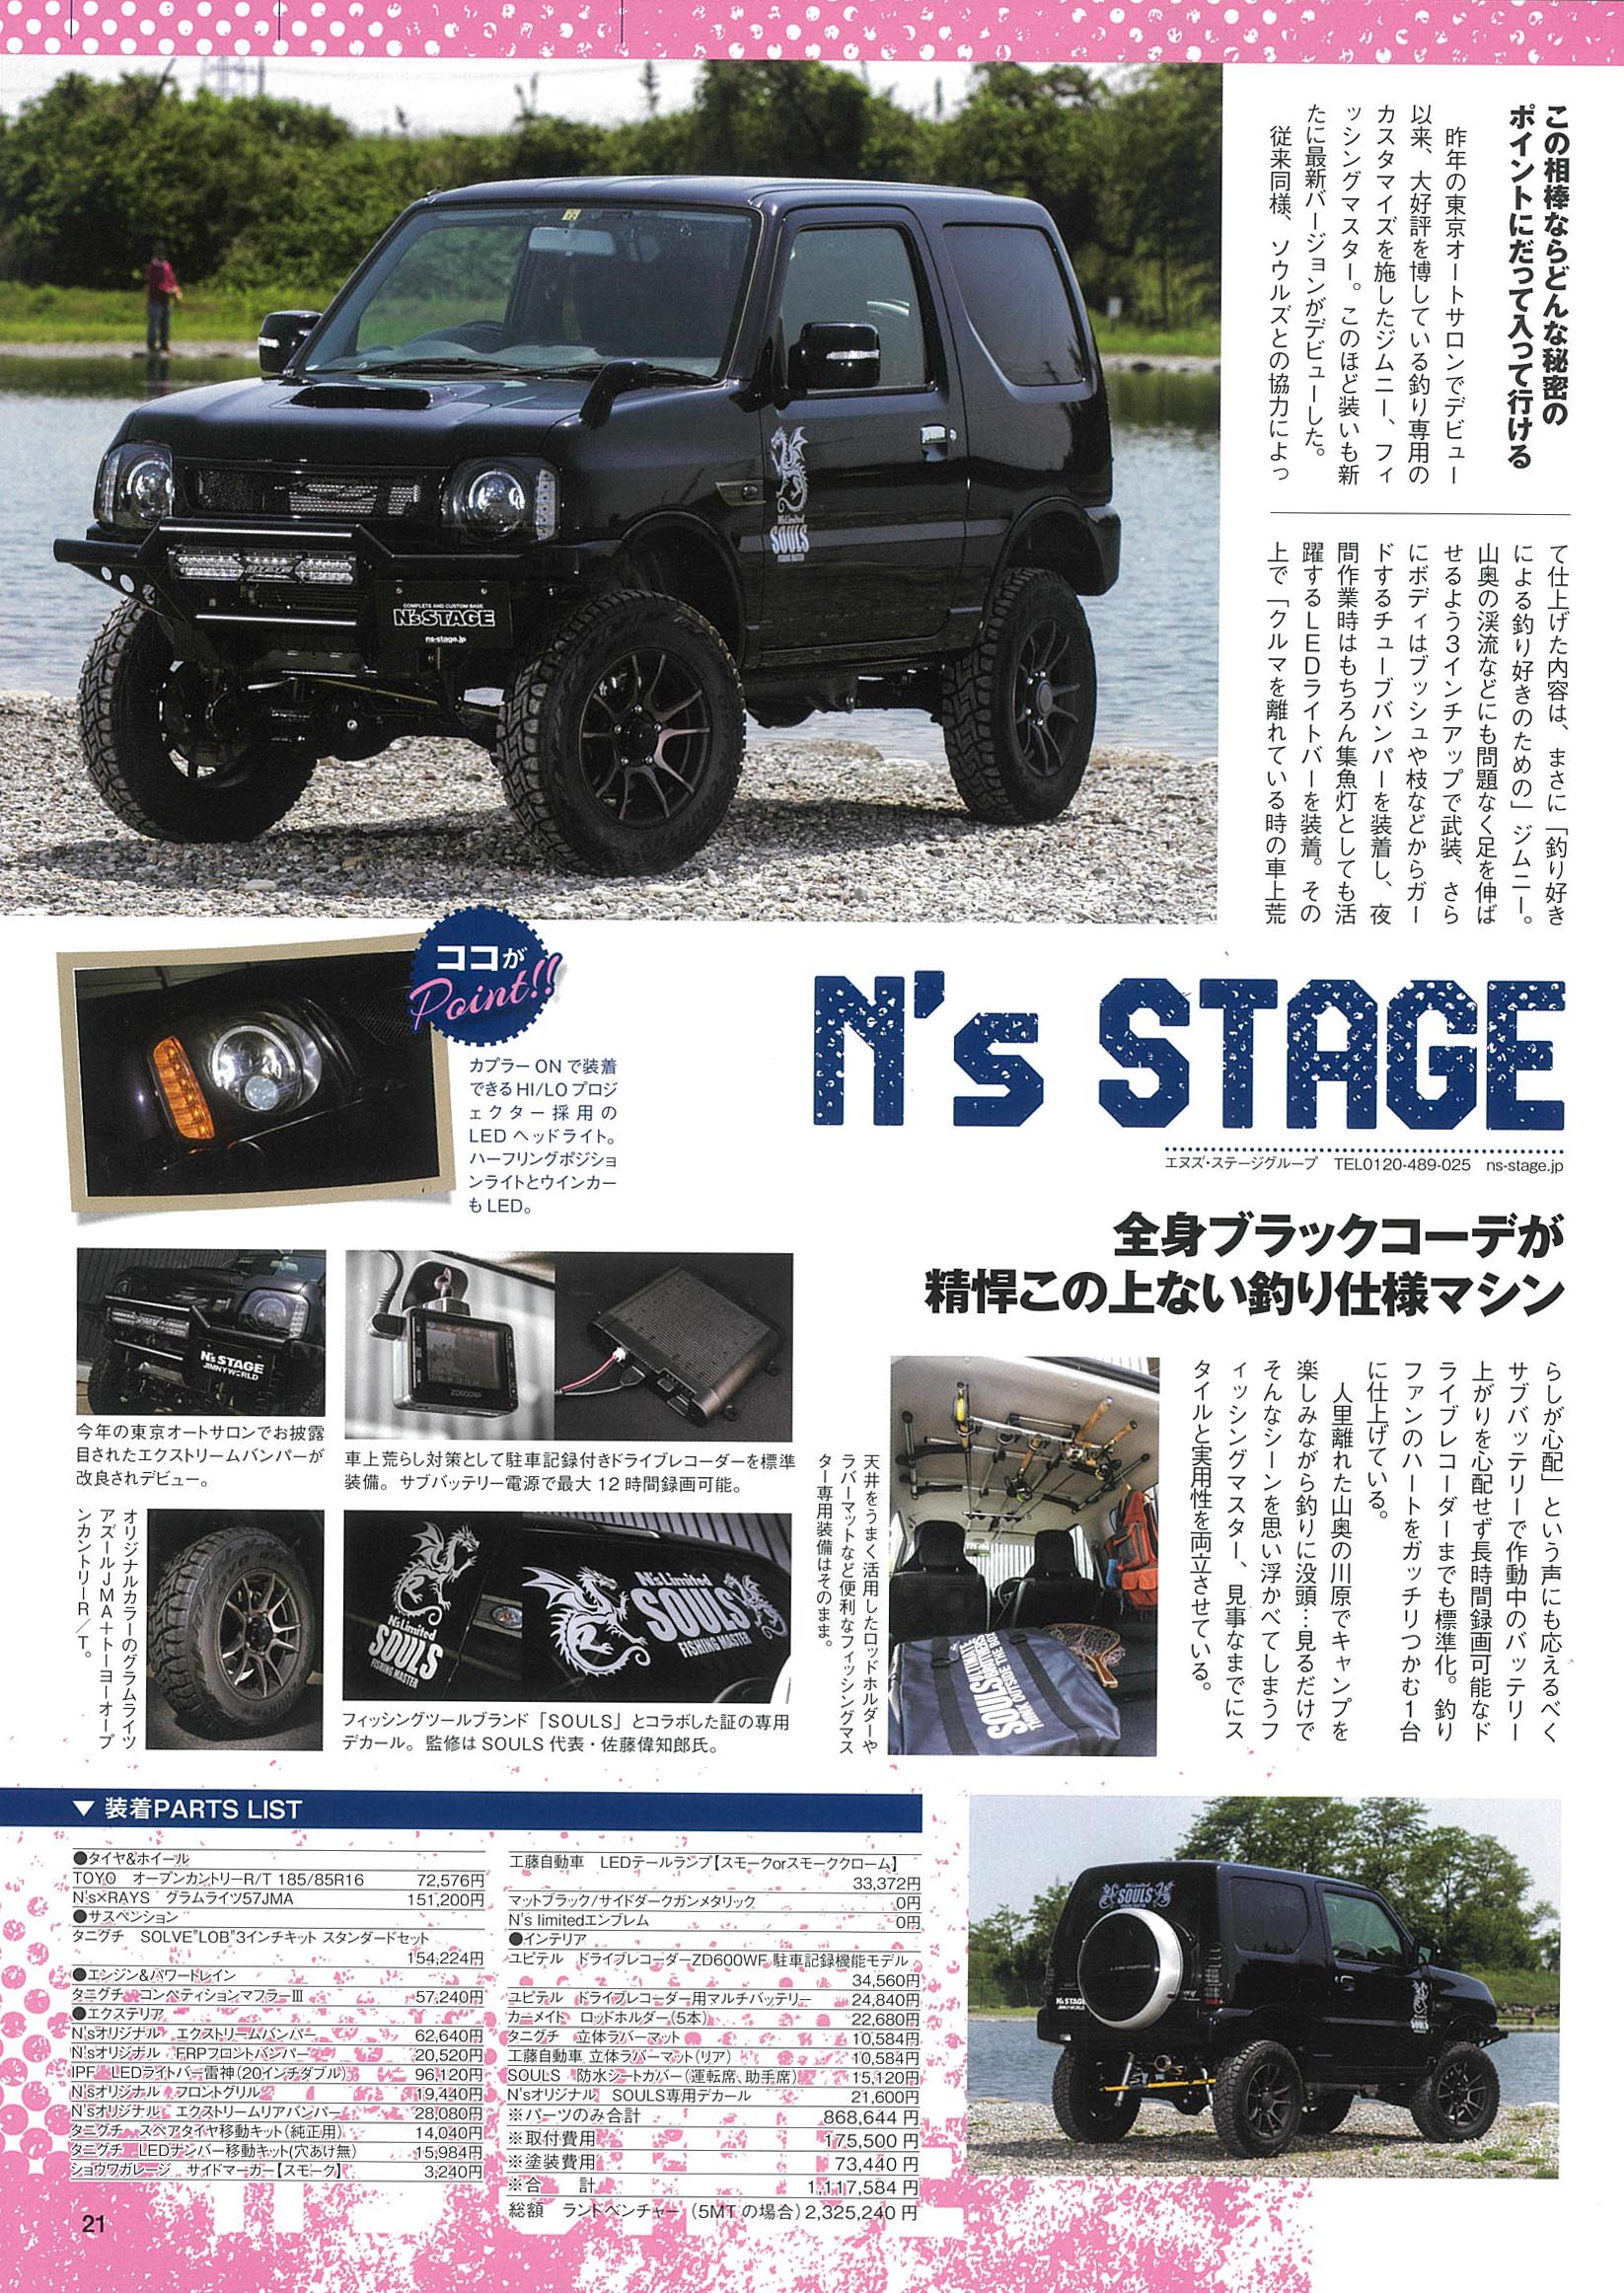 http://www.ns-stage.com/publication/201707LG2.jpg